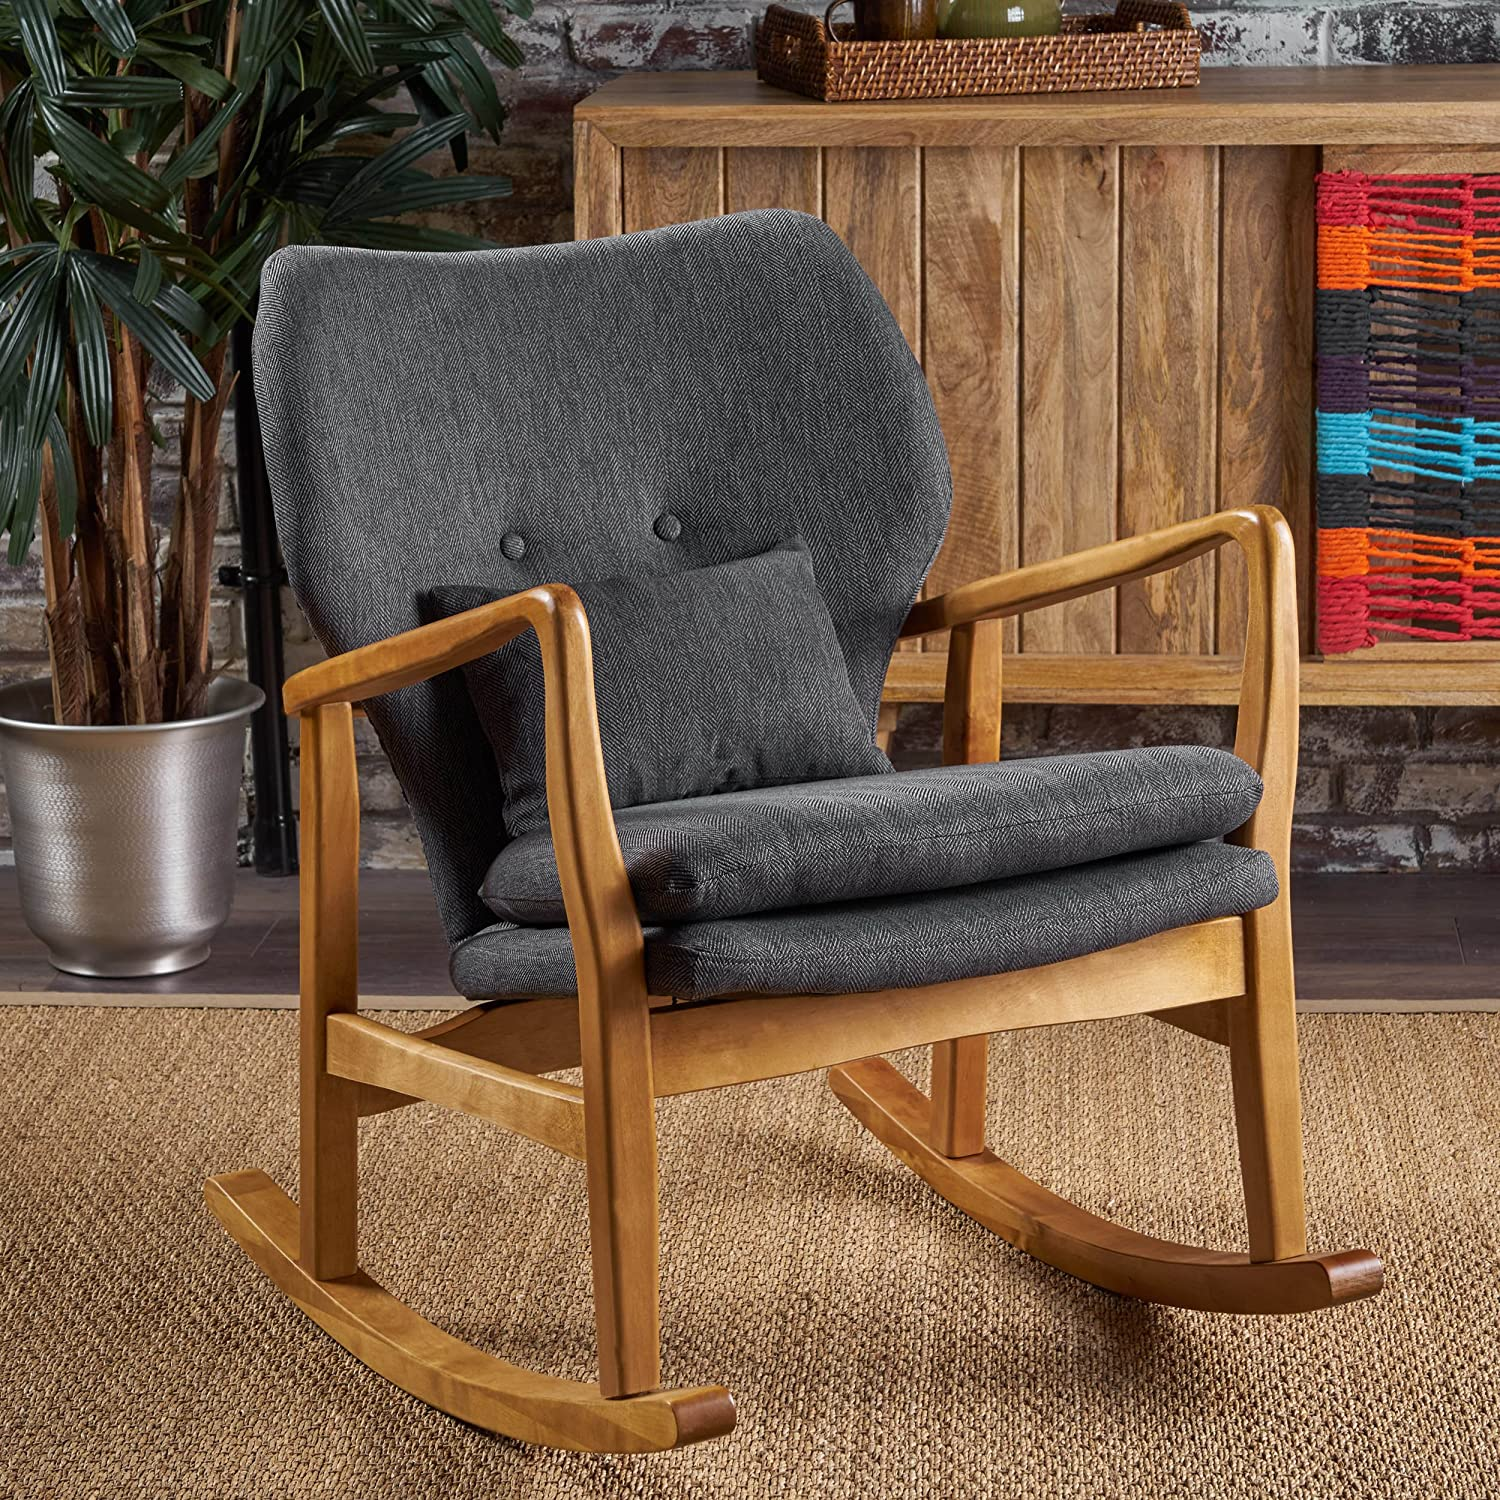 Marvelous Christopher Knight Home Jenny Mid Century Modern Fabric Rocking Chair Dark Slate Light Walnut Creativecarmelina Interior Chair Design Creativecarmelinacom